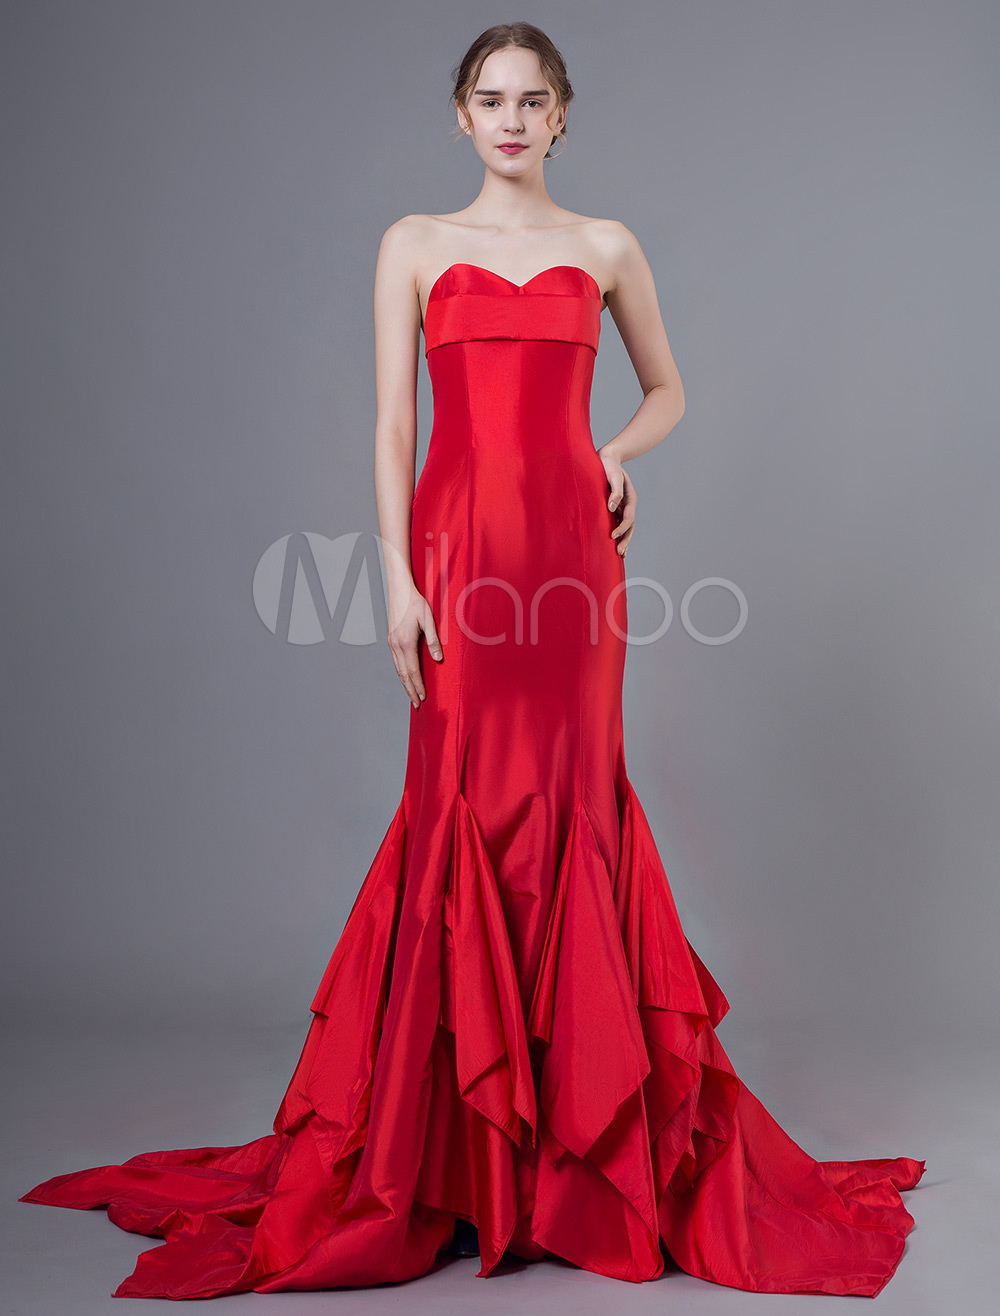 39fedccb4a3 Red Strapless Mermaid Evening Dress